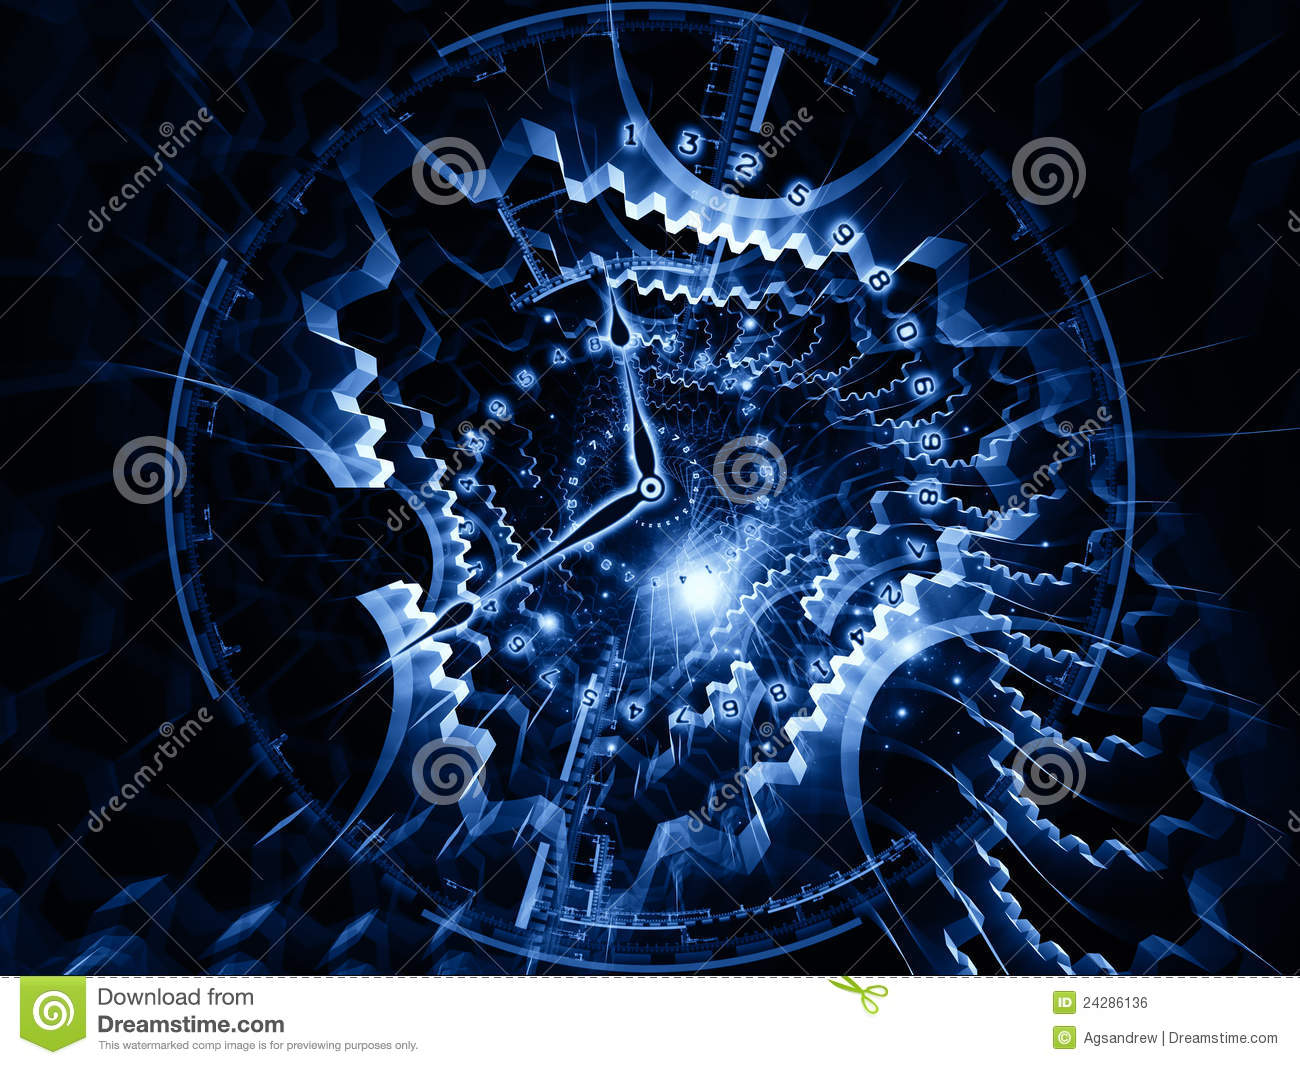 fractal time Marrying the modern laws of fractal patterns to the ancient concept of cycles, he demonstrates how everything from the war and peace between nations to our most joyous relationships and personal crises are the returning patterns of our past.